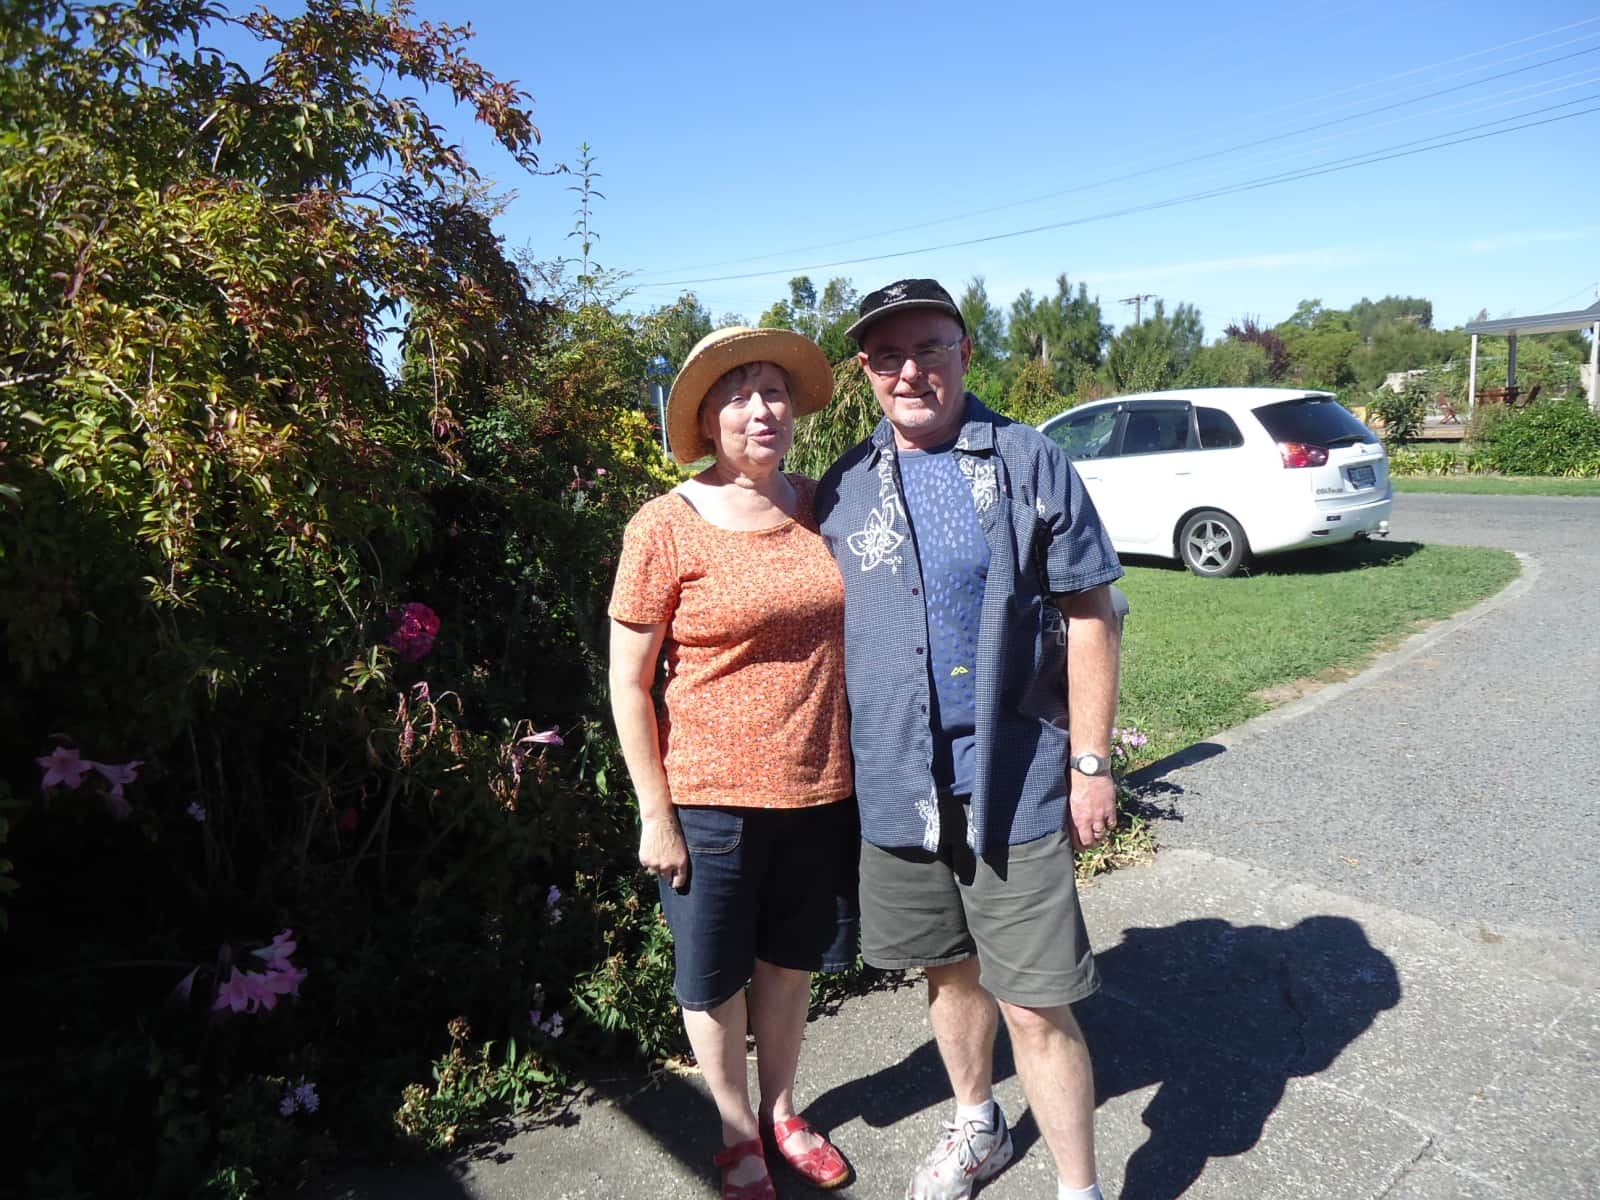 Christine & Terry from Trentham, New Zealand